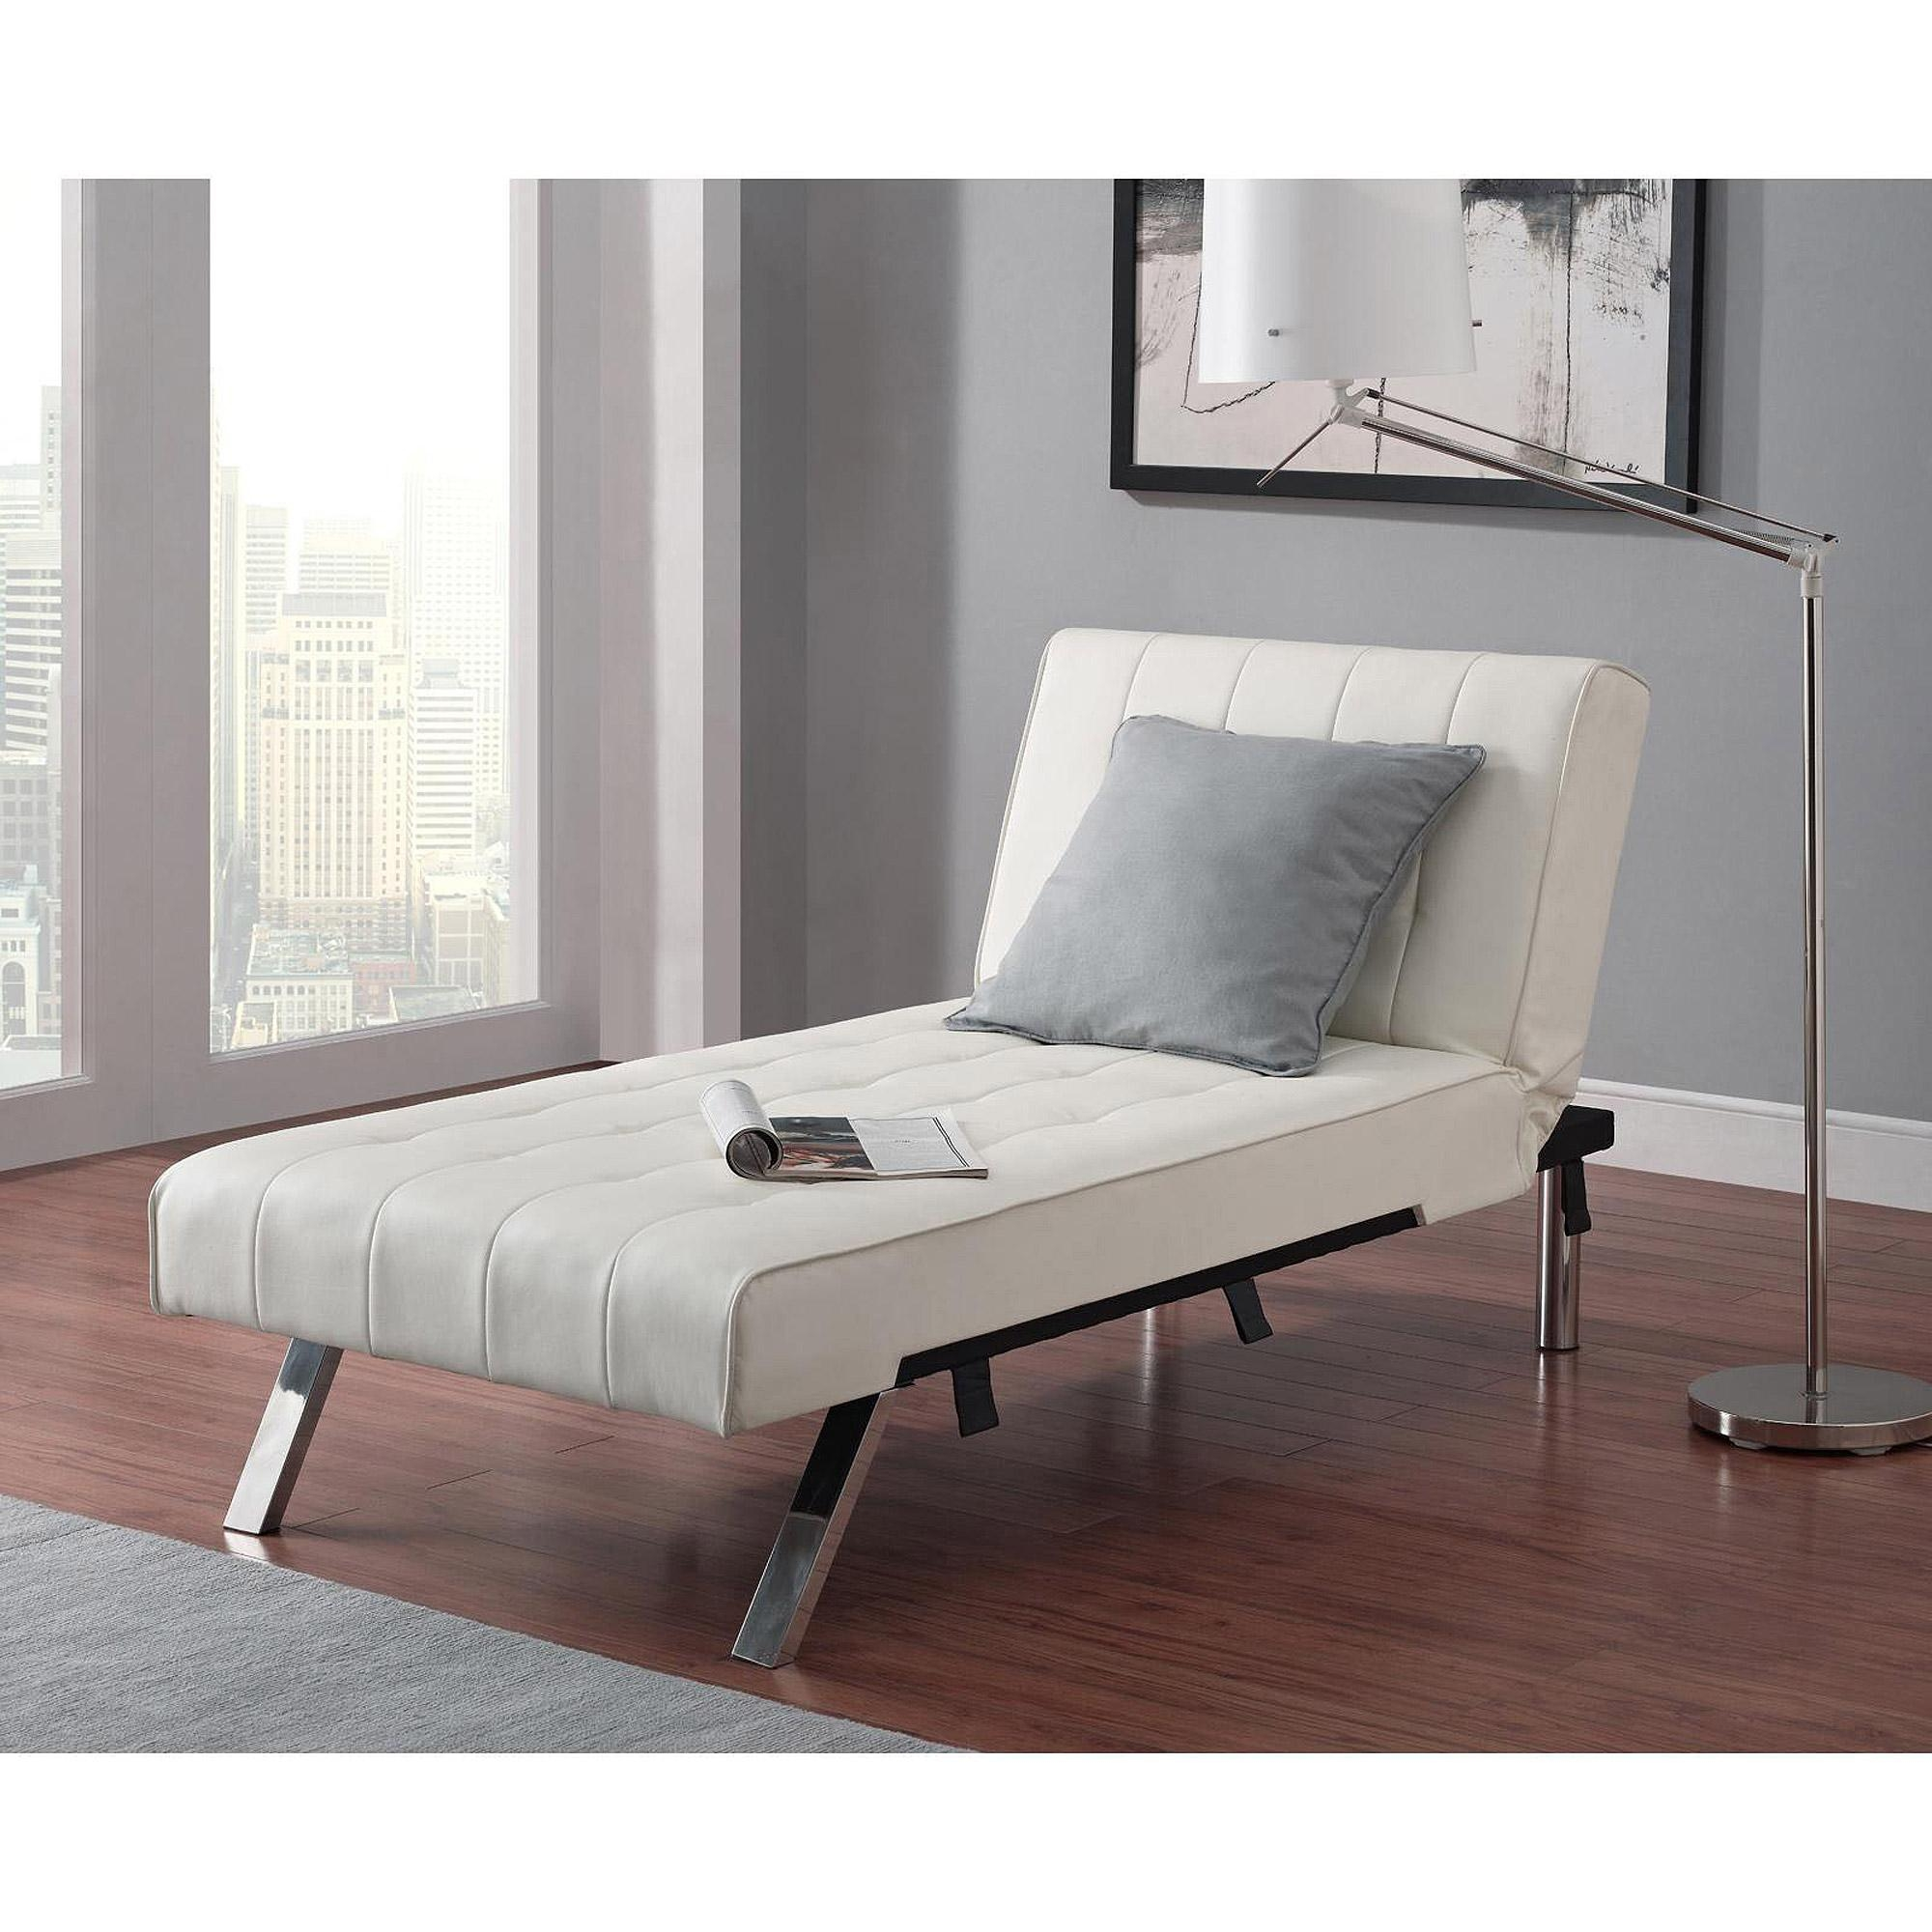 Emily Futon Chaise Lounger, Multiple Colors – Walmart Intended For Emily Sofas (View 19 of 20)